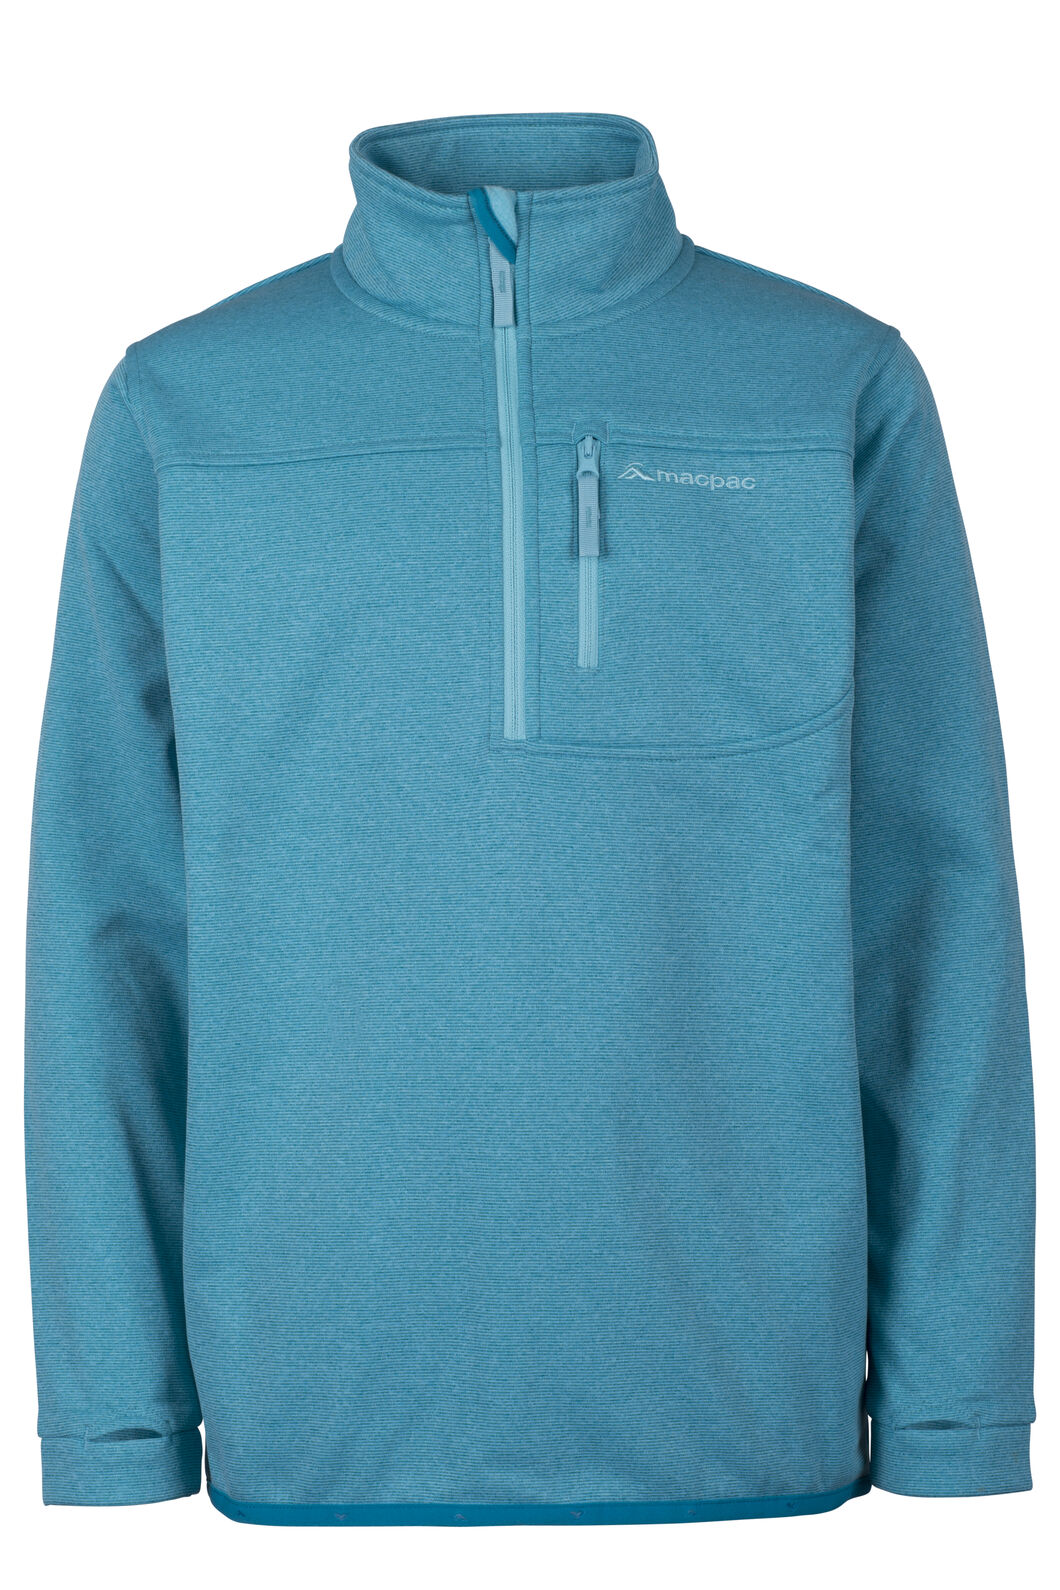 Macpac Kiwi Fleece Pullover - Kids', Enamel Blue, hi-res